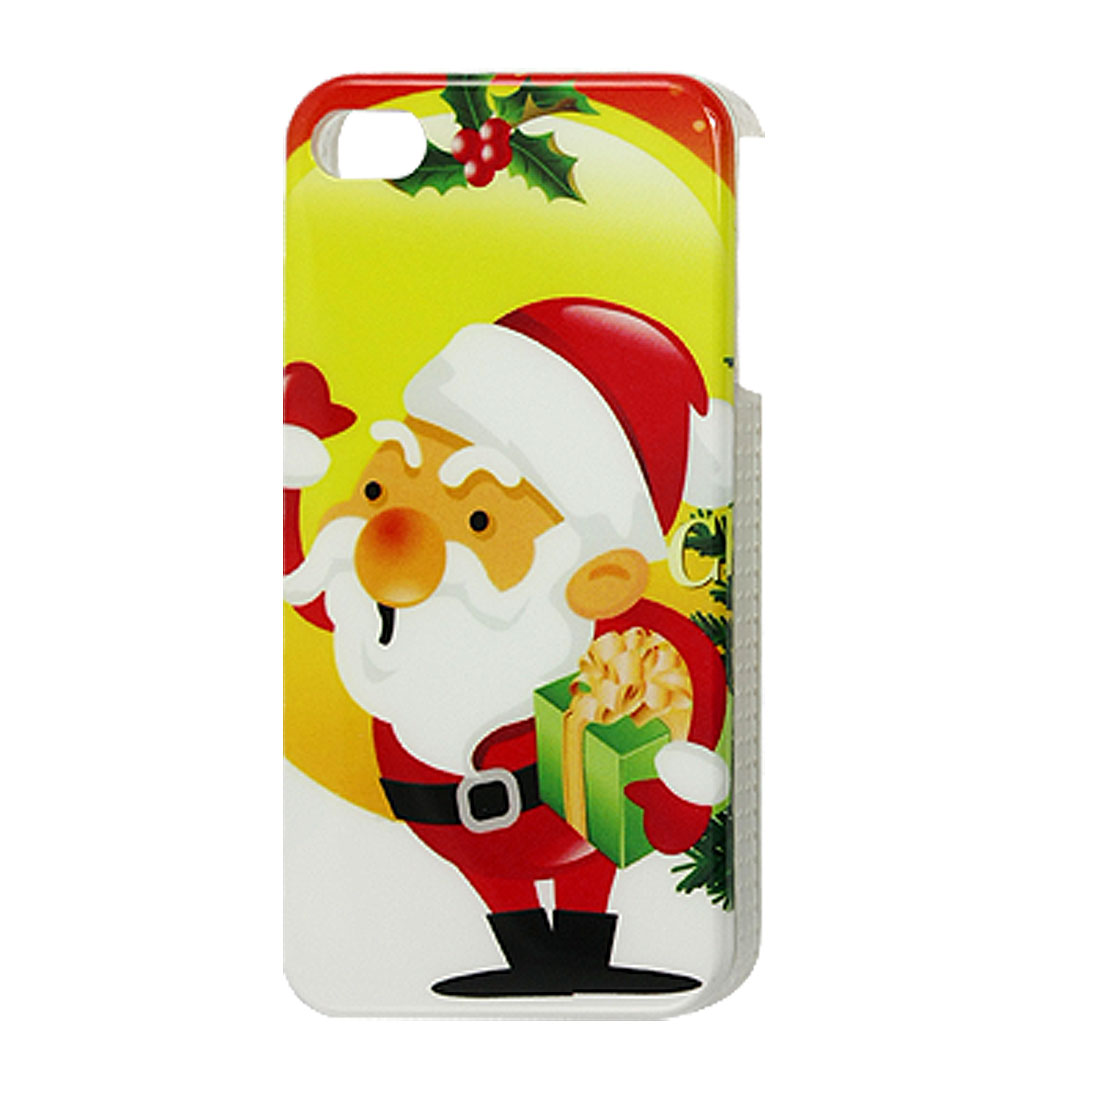 Colorful Santa Claus Print IMD Back Case Cover for iPhone 4 4G 4S